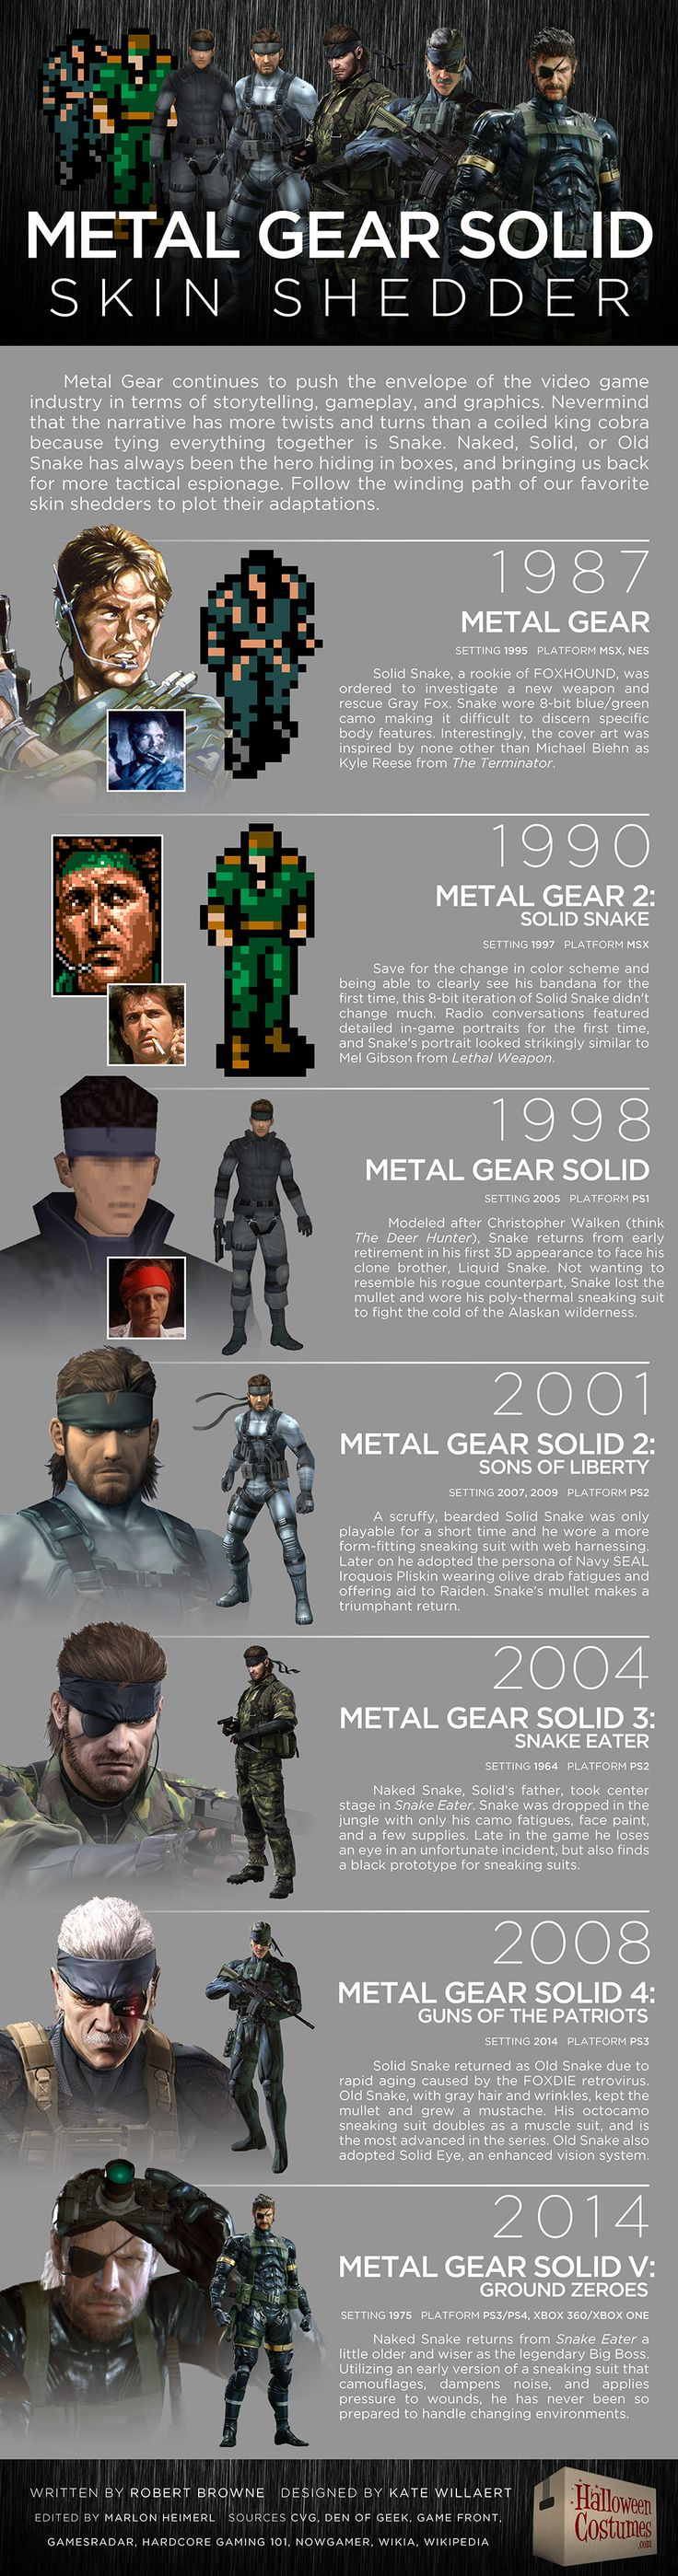 Metal-Gear-Solid-Infographic.jpg 1,000×3,802 ピクセル